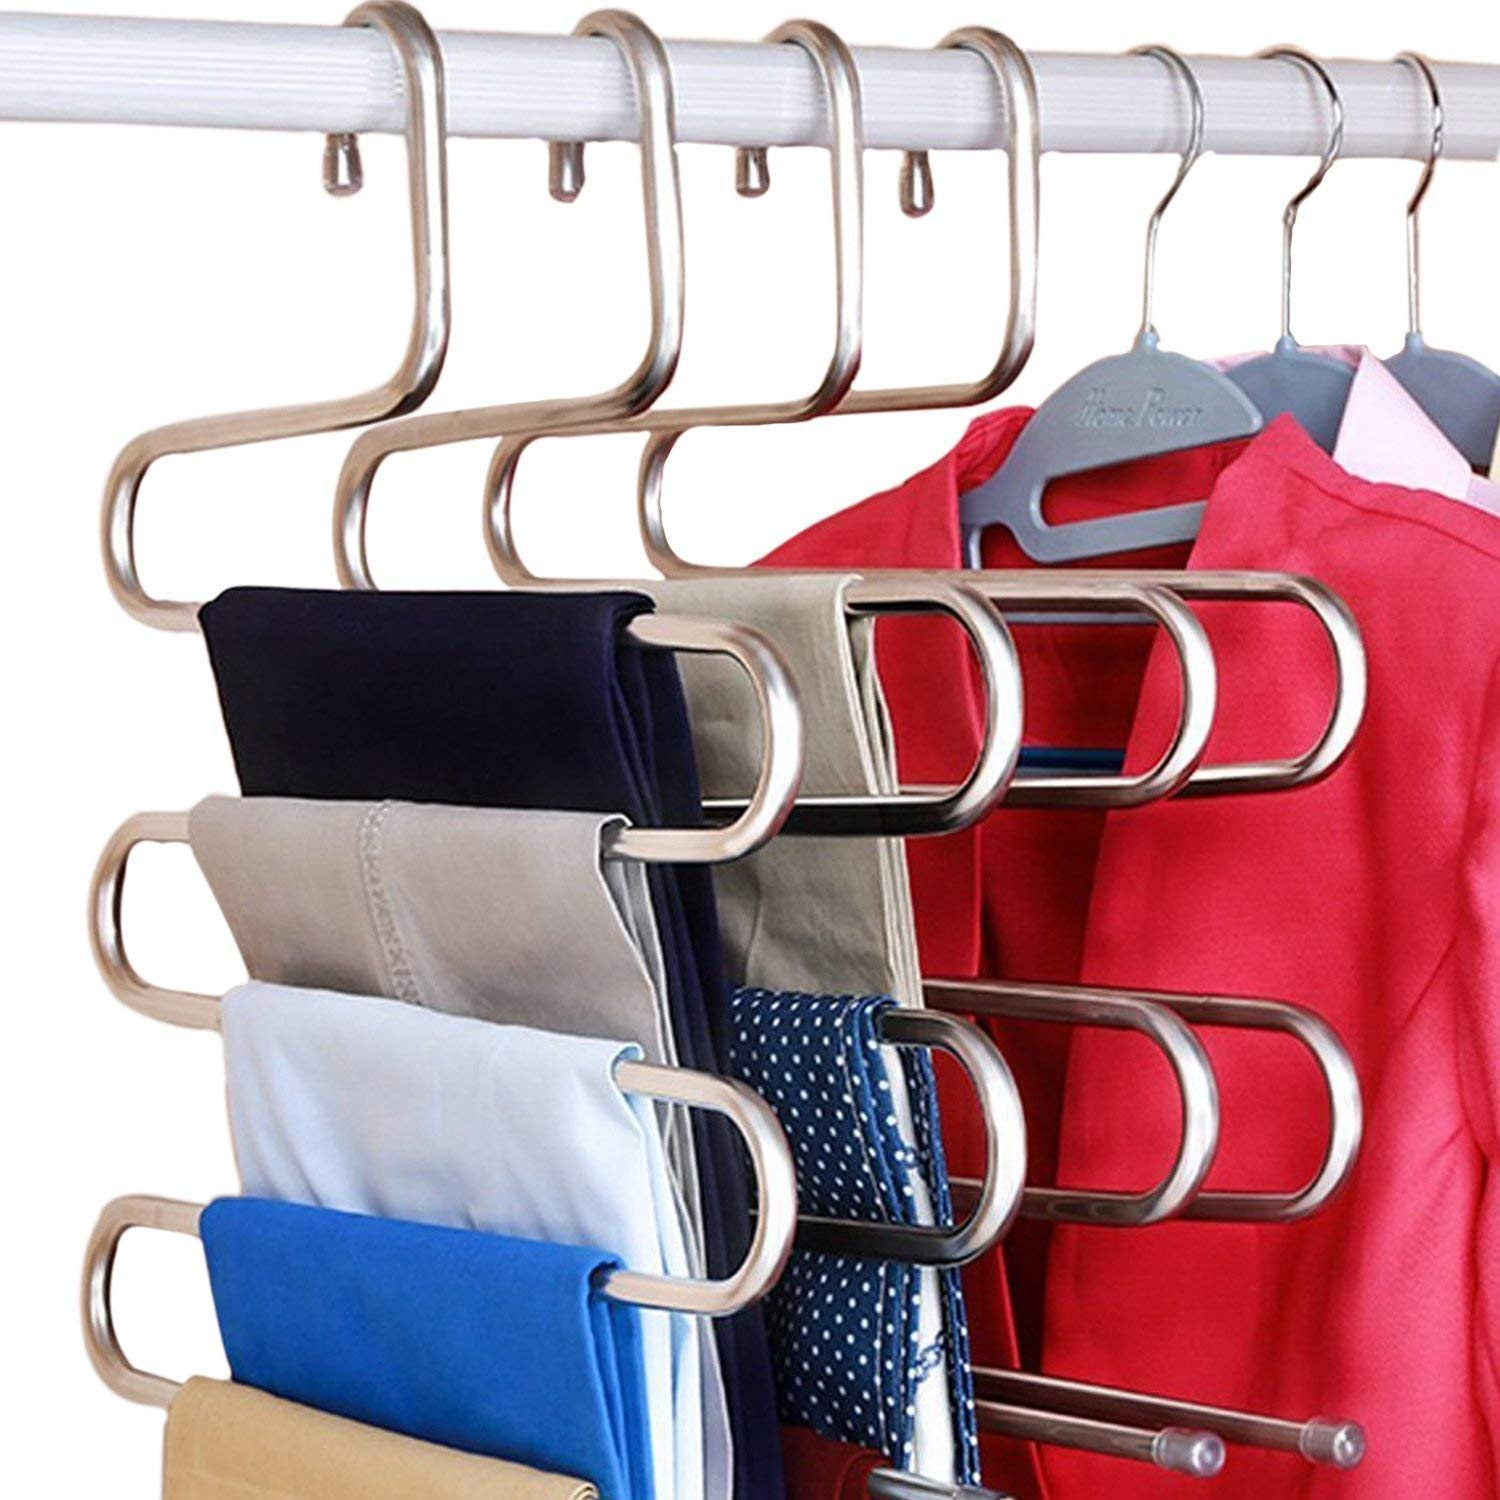 hiixhc S-Type Stainless Steel Clothes Pants Hangers Closet Storage Organizer Multi-Purpose Closet Storage Pants Jeans Tie Scarf Towel Clothes, Space Saving Storage Rack (1-Piece)